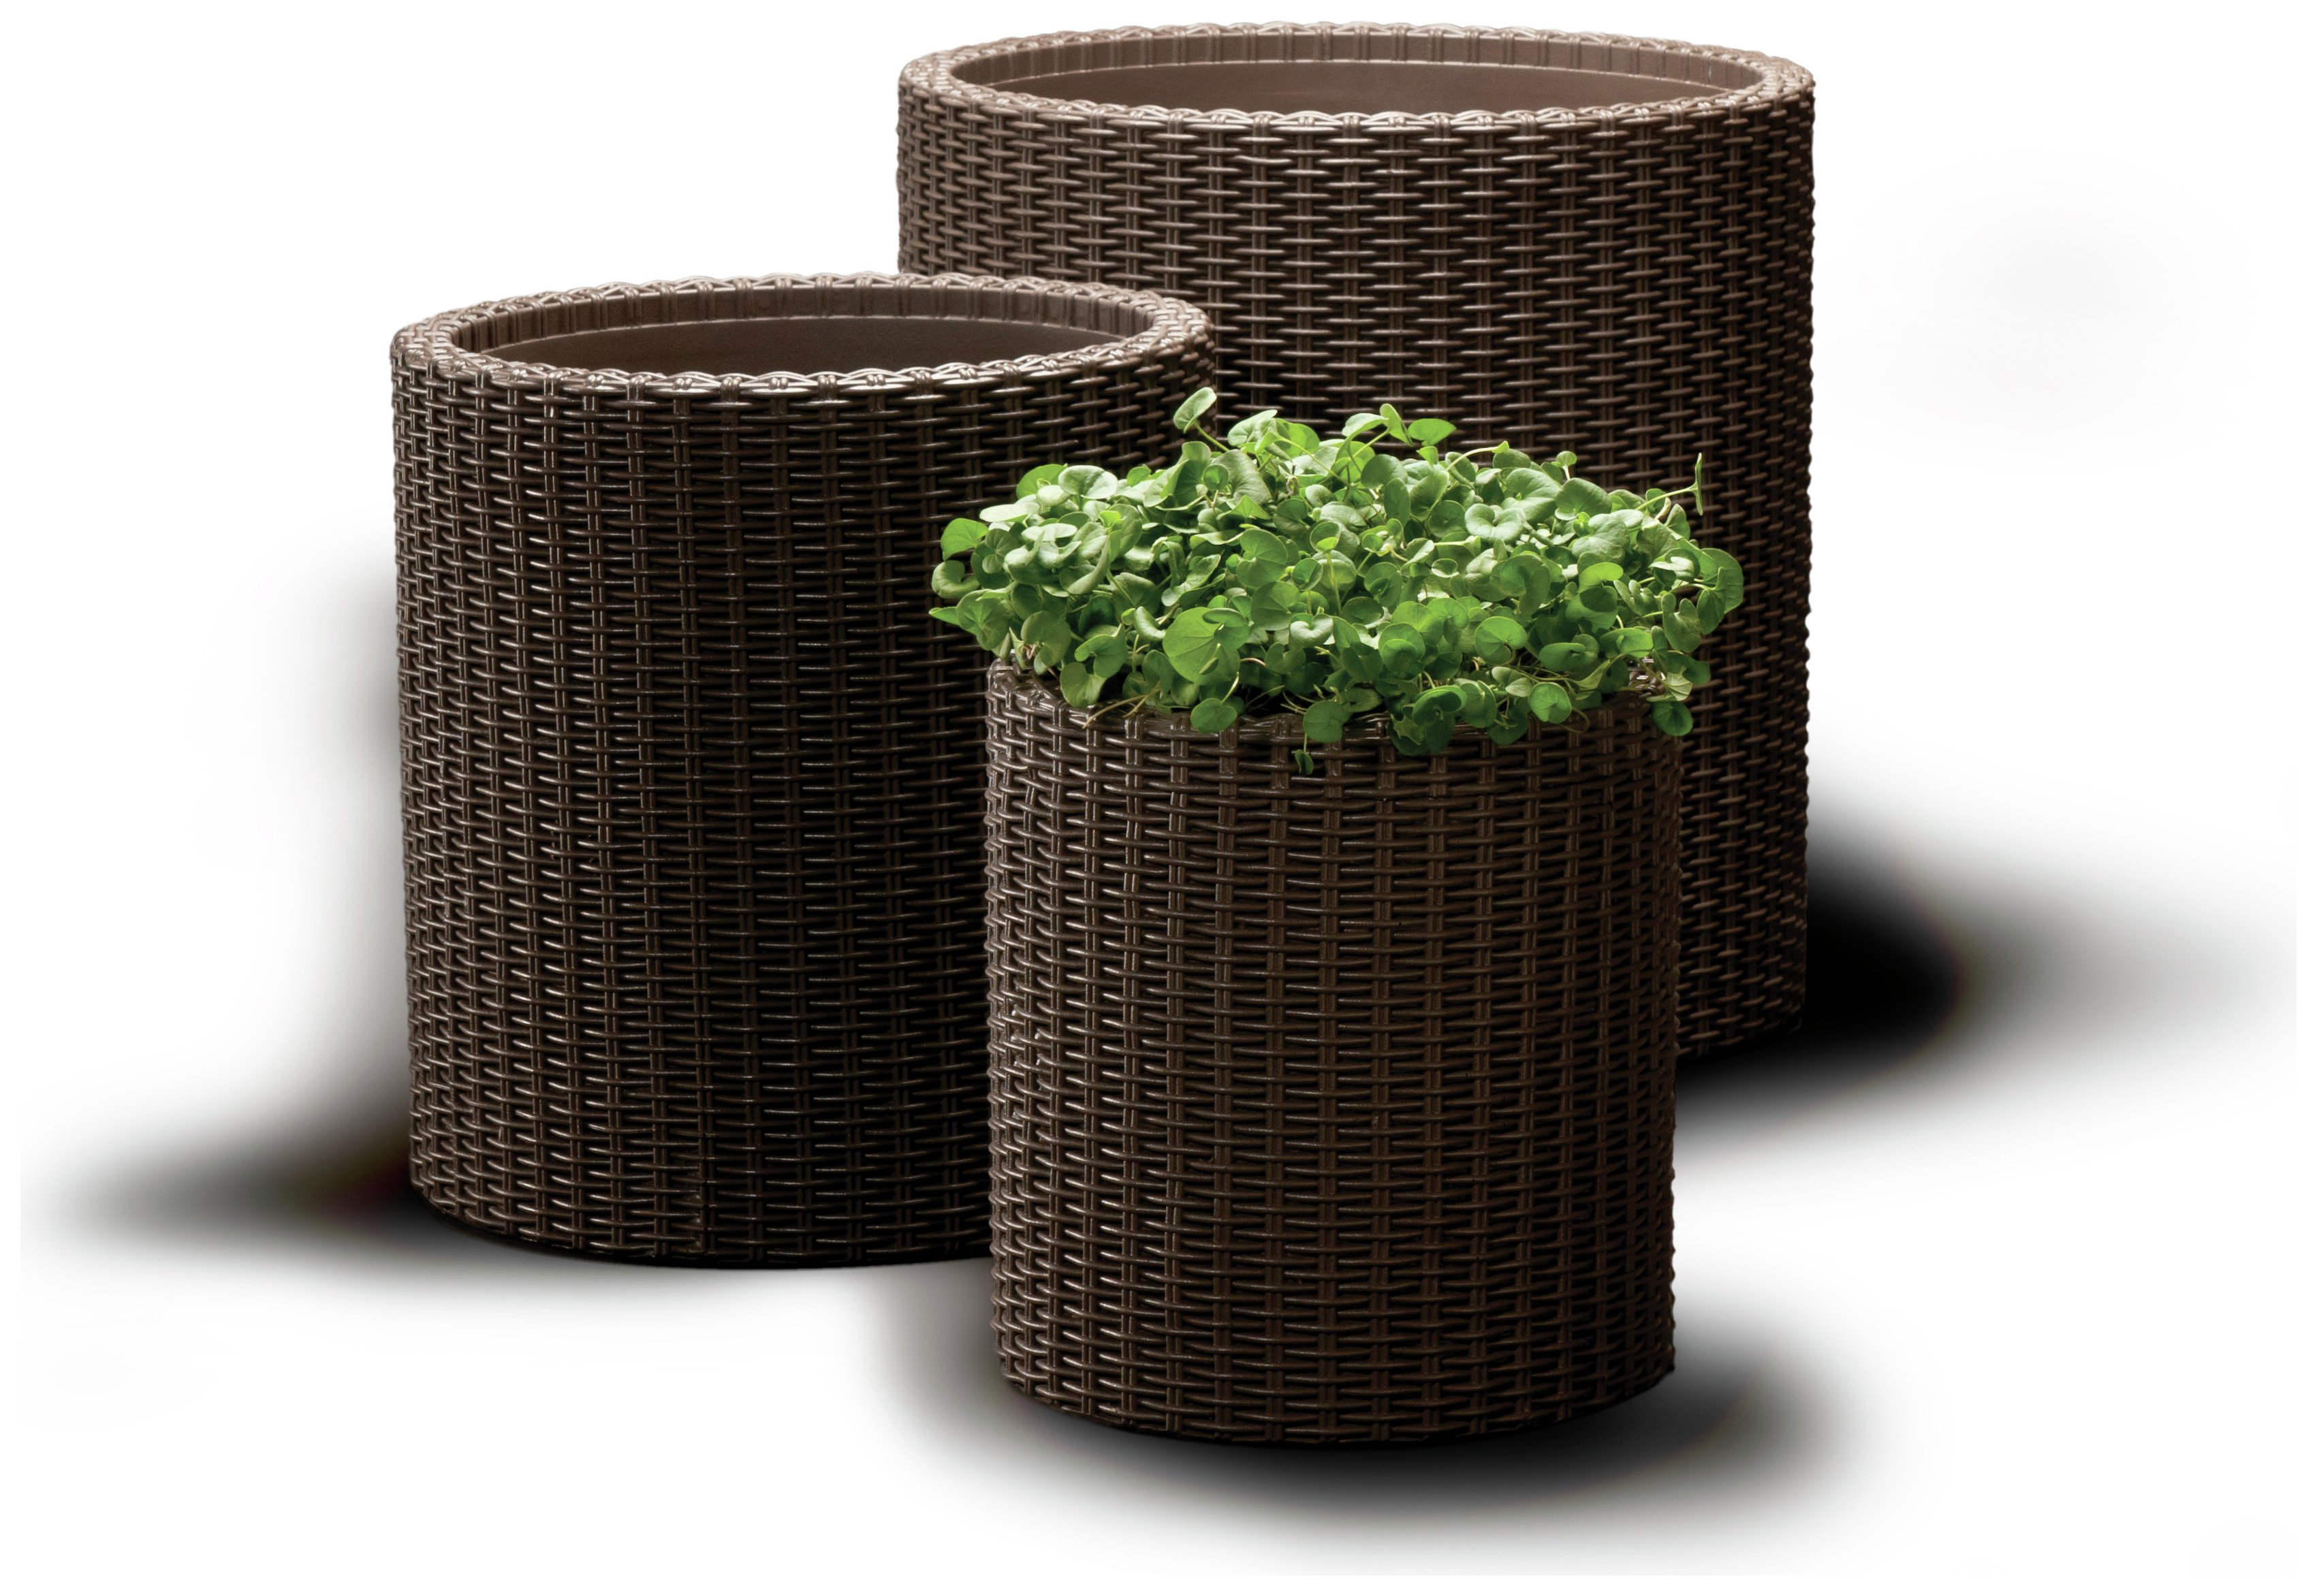 Image of Keter - Rattan Set Of 3 Planters